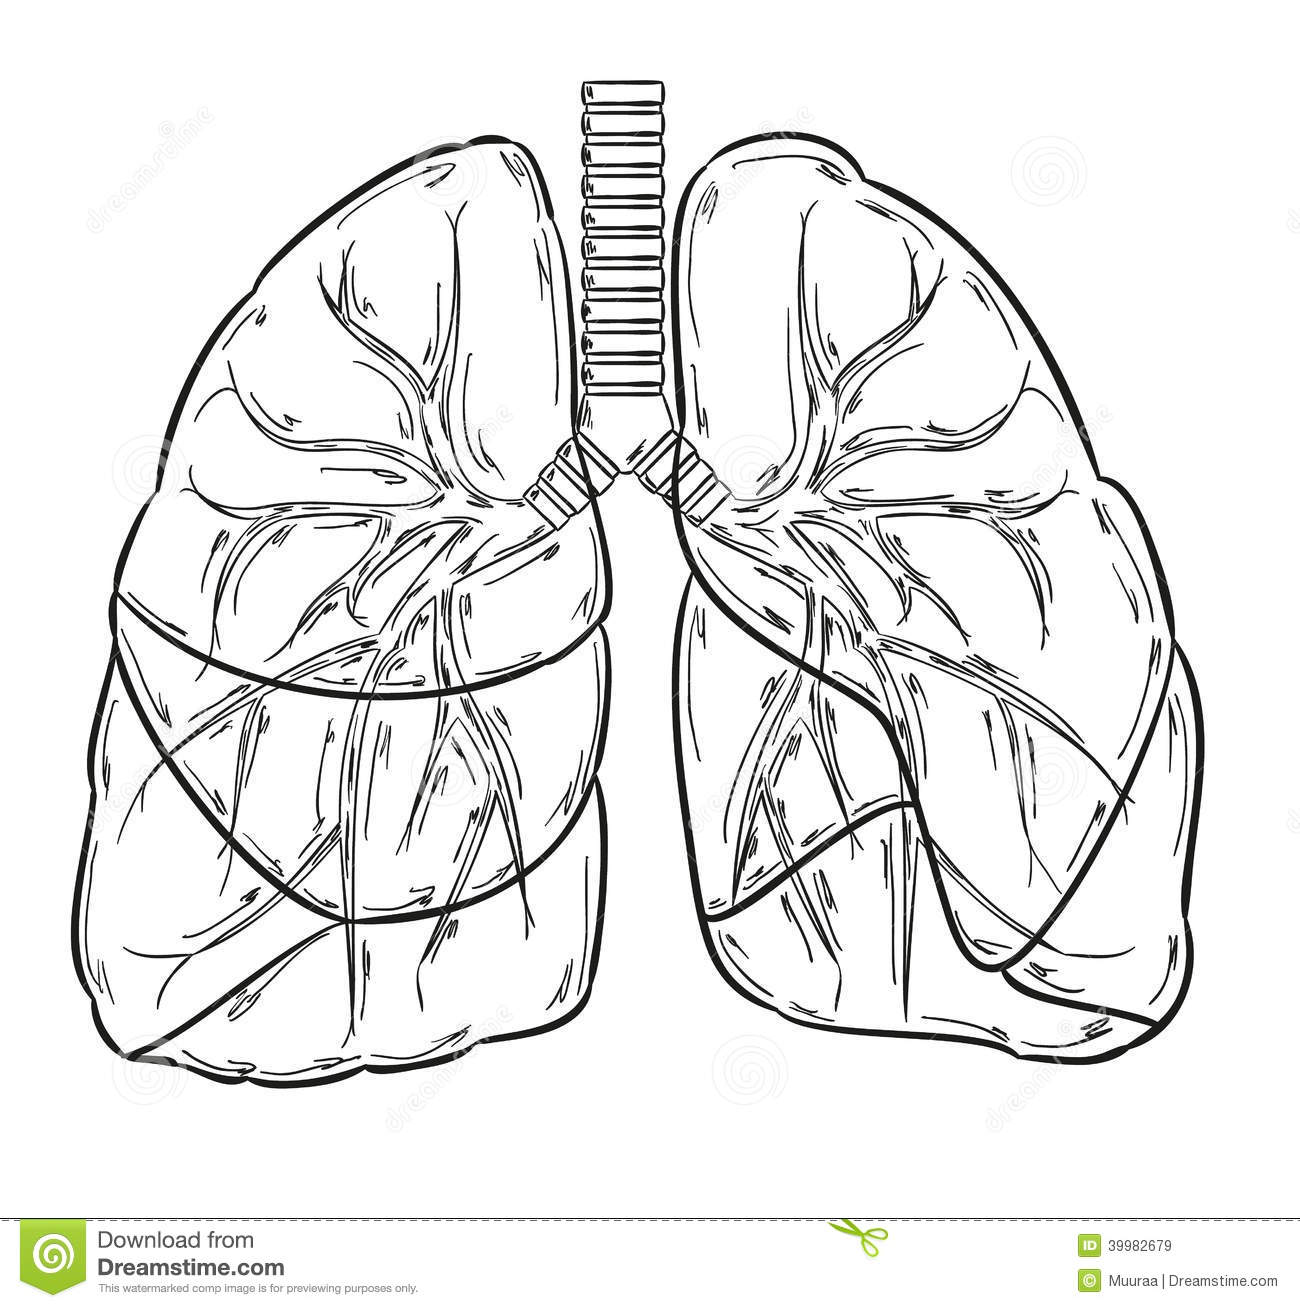 81 Info Lungs For Ks3